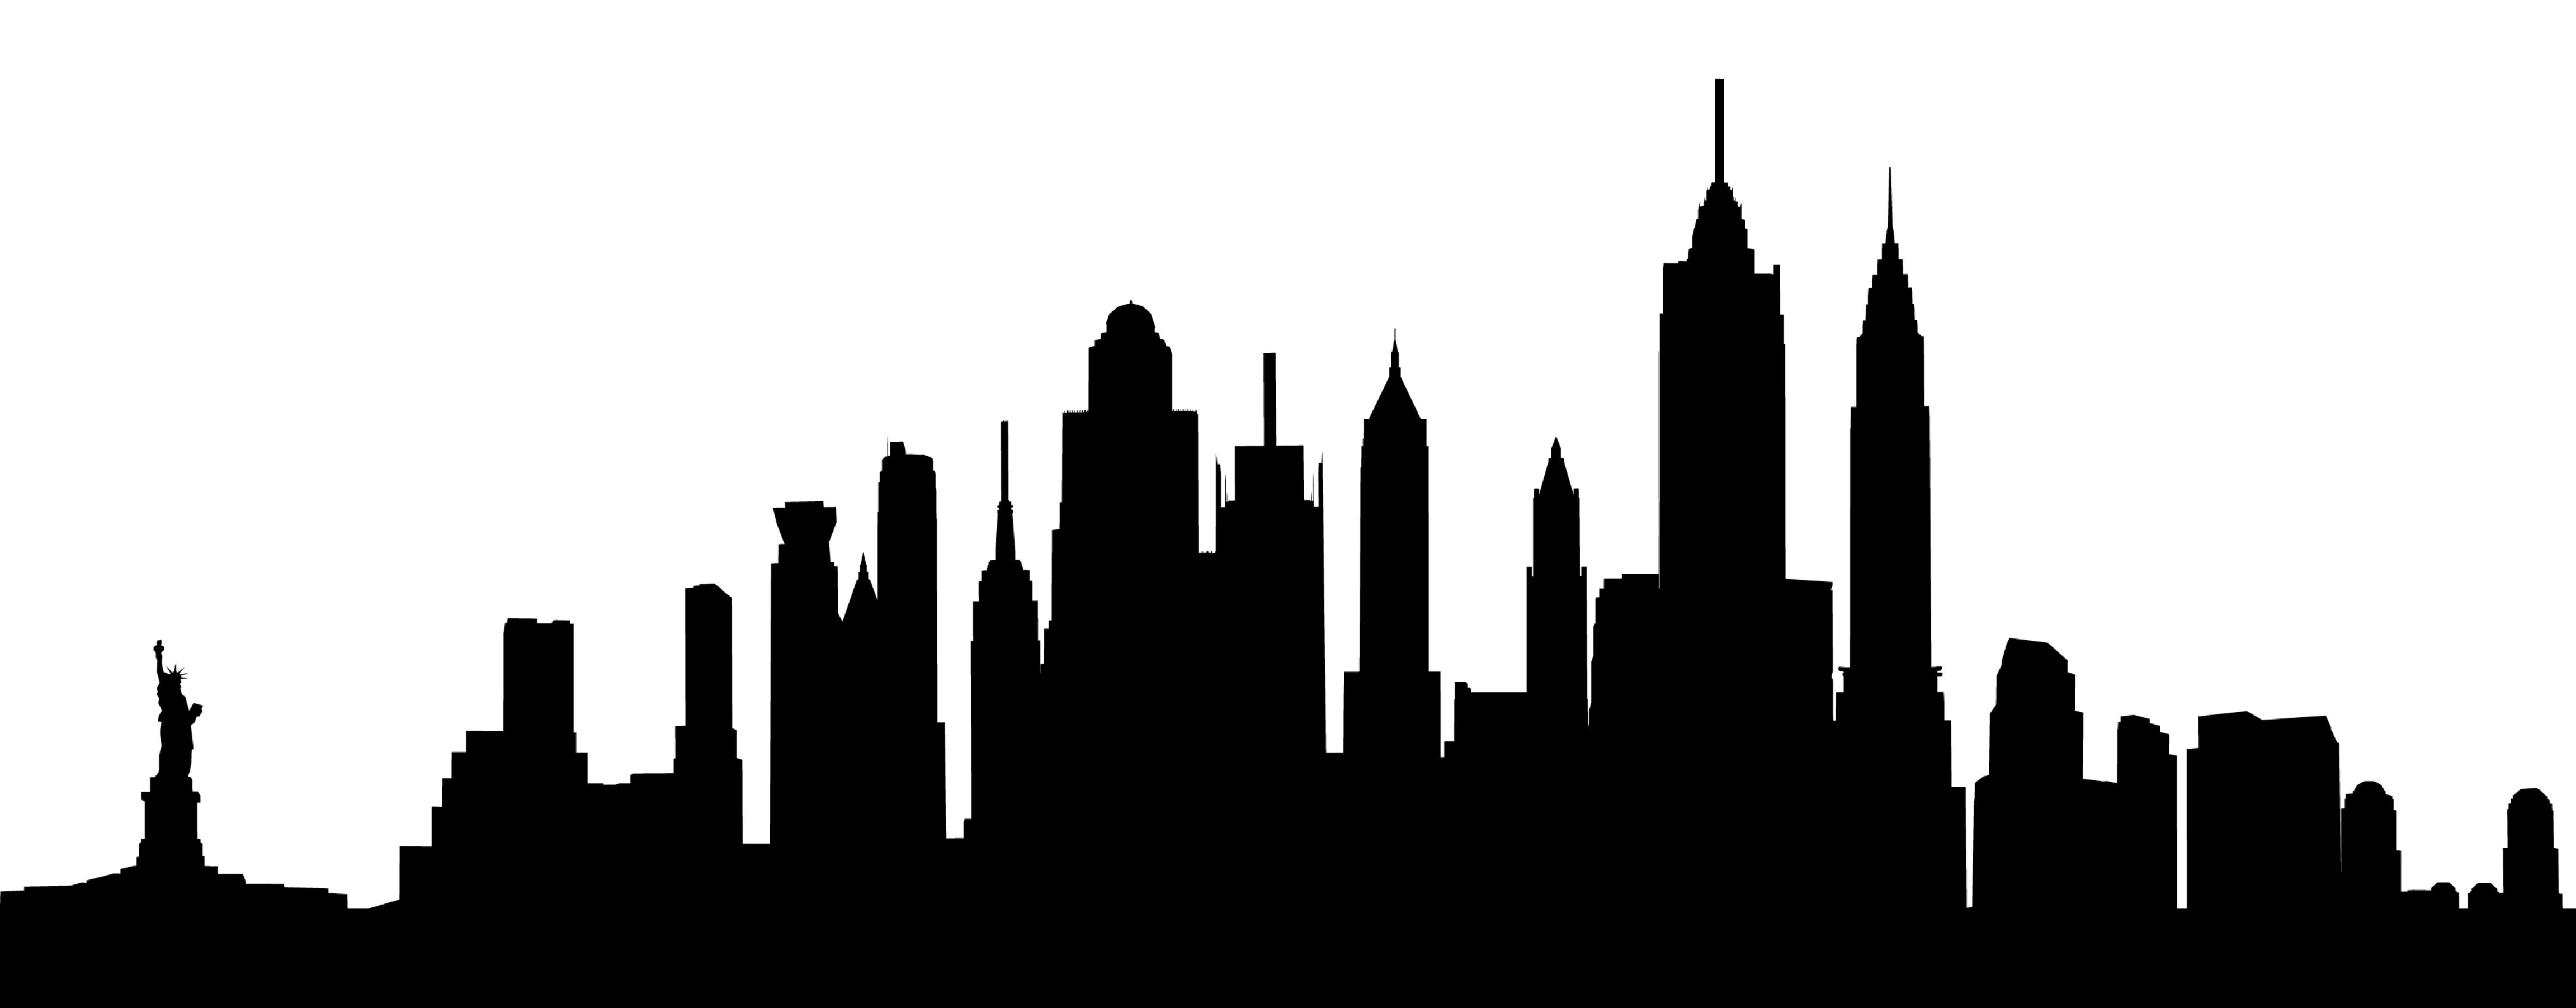 4606x1803 New York City Skyline Things I Would Make Into Posters